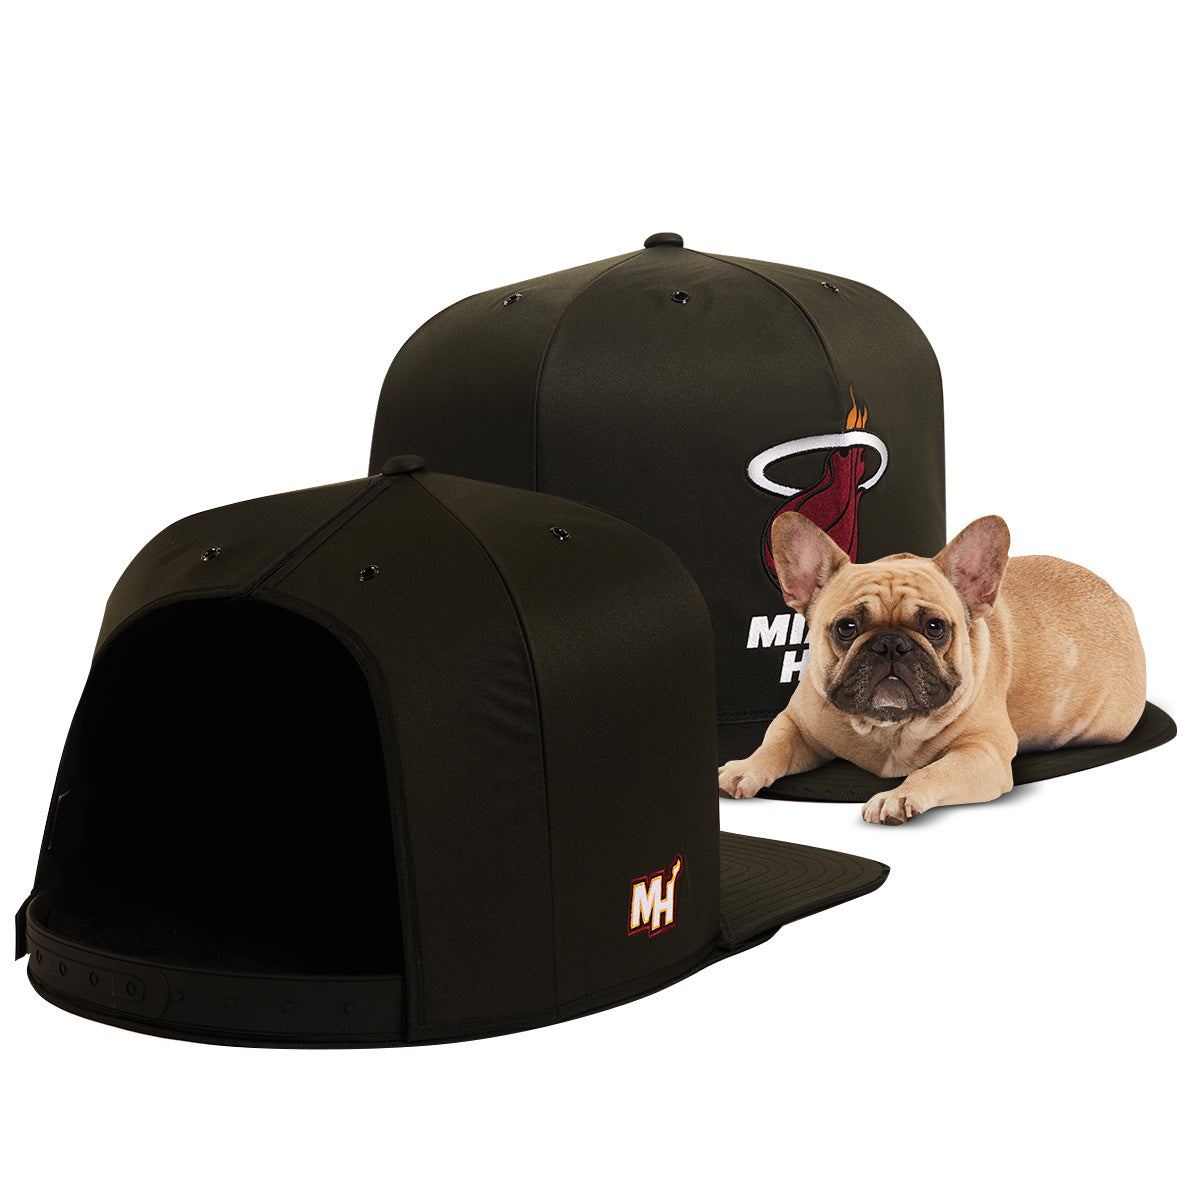 Nap Cap - NBA - Miami Heat - Pet Bed